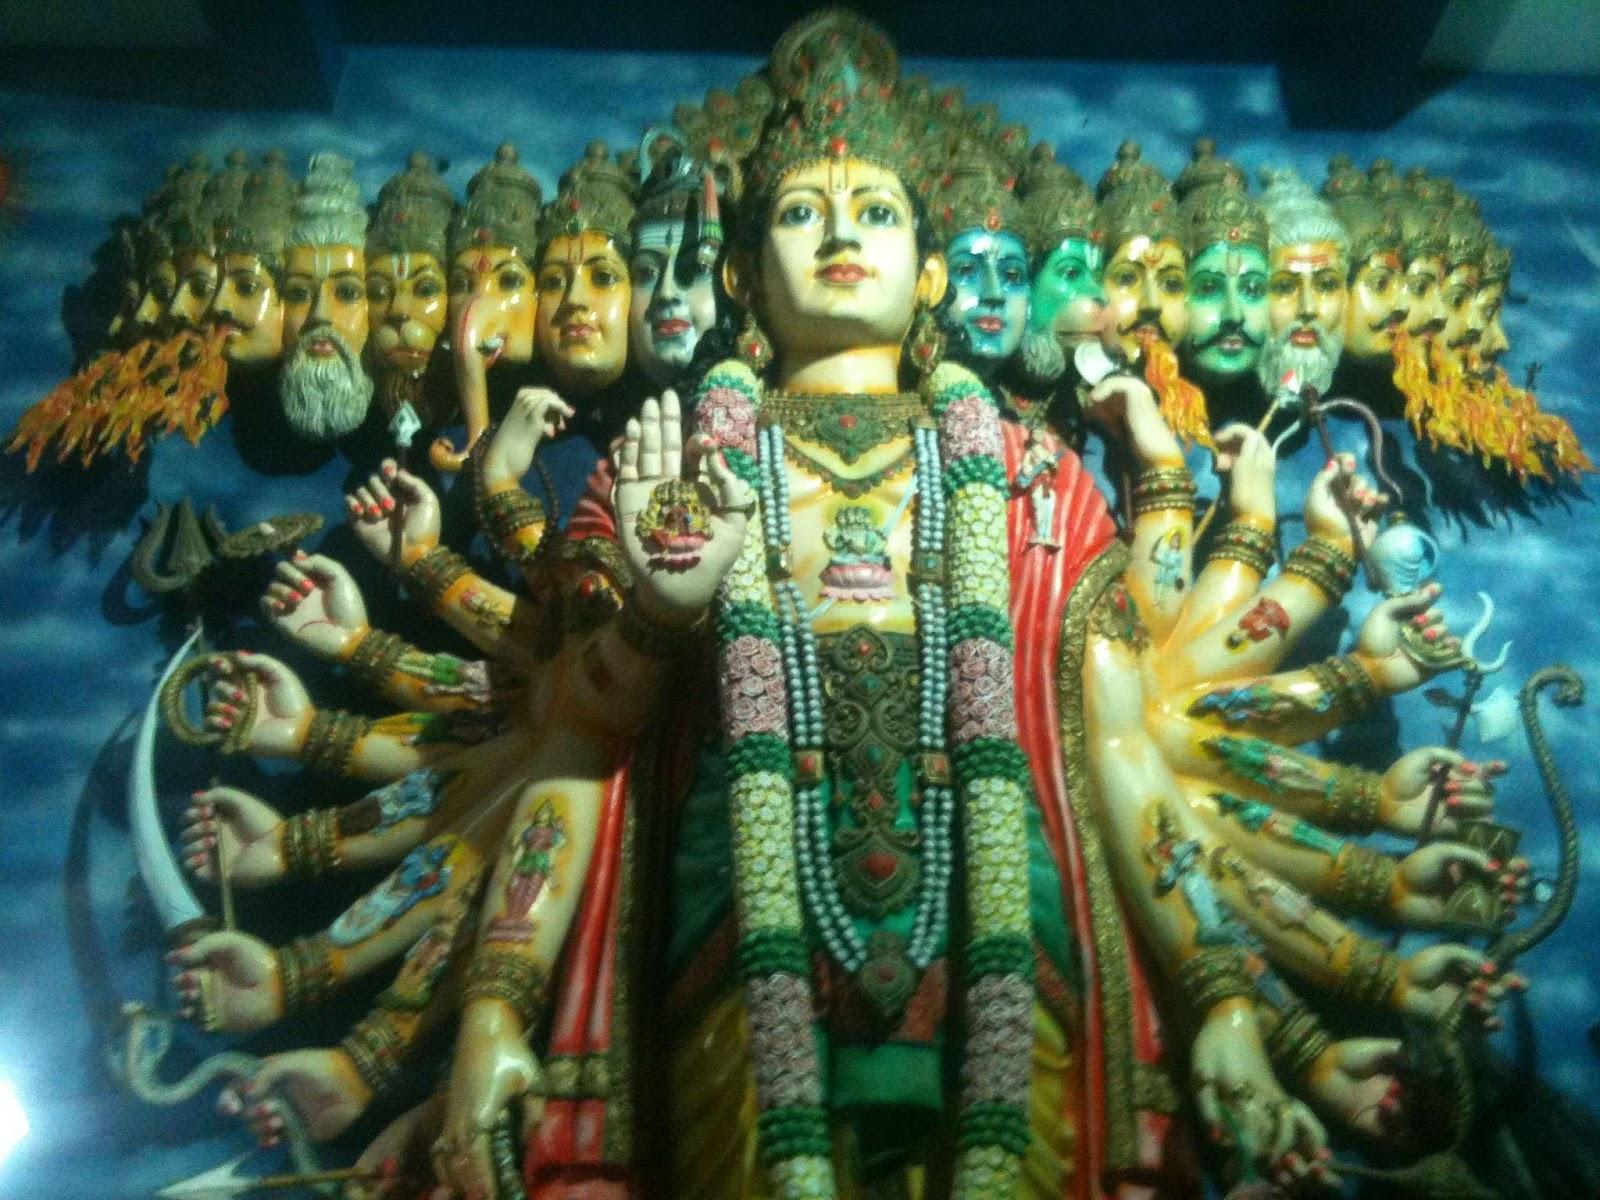 Letest Lord Vishnu Pictures Full Hd Wallpapers Ou Can Make Beautiful Photography Lord Vishnu Wallpaper For Your Desktop Background Images Of Love